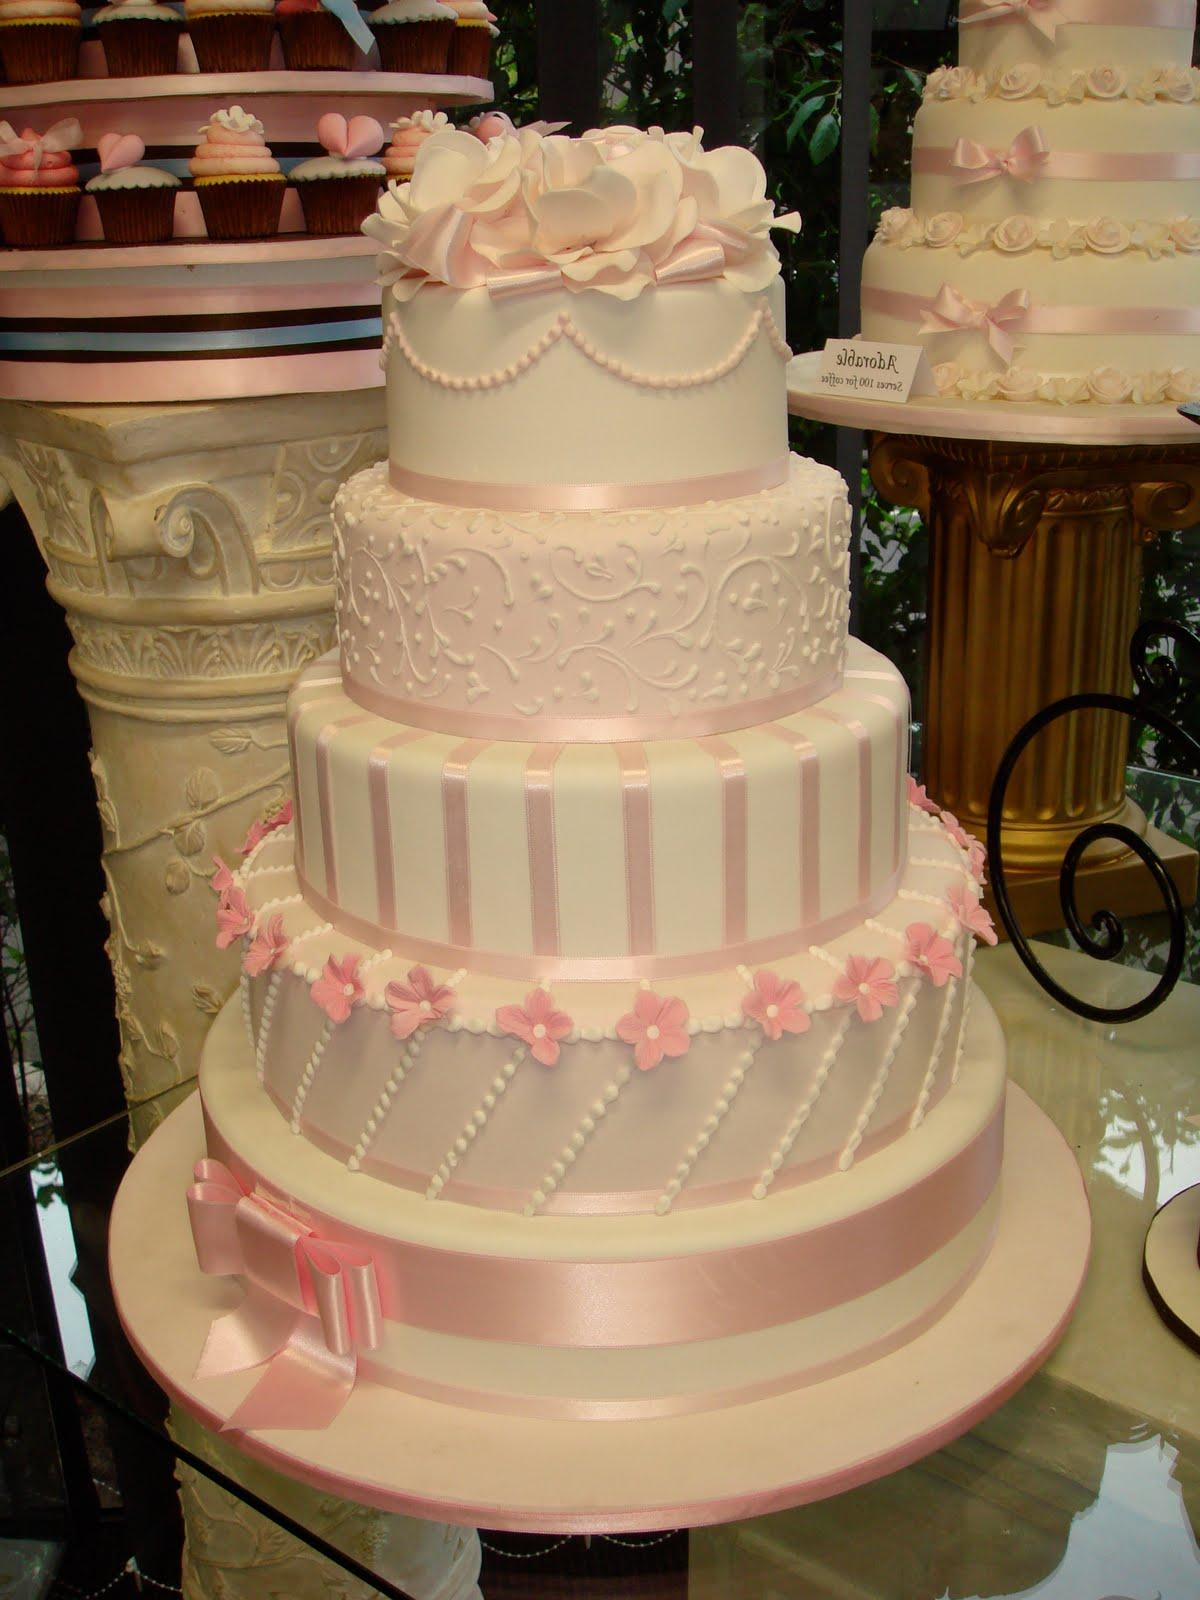 My wedding cake dreams have just been shaken. Apparently the monumental